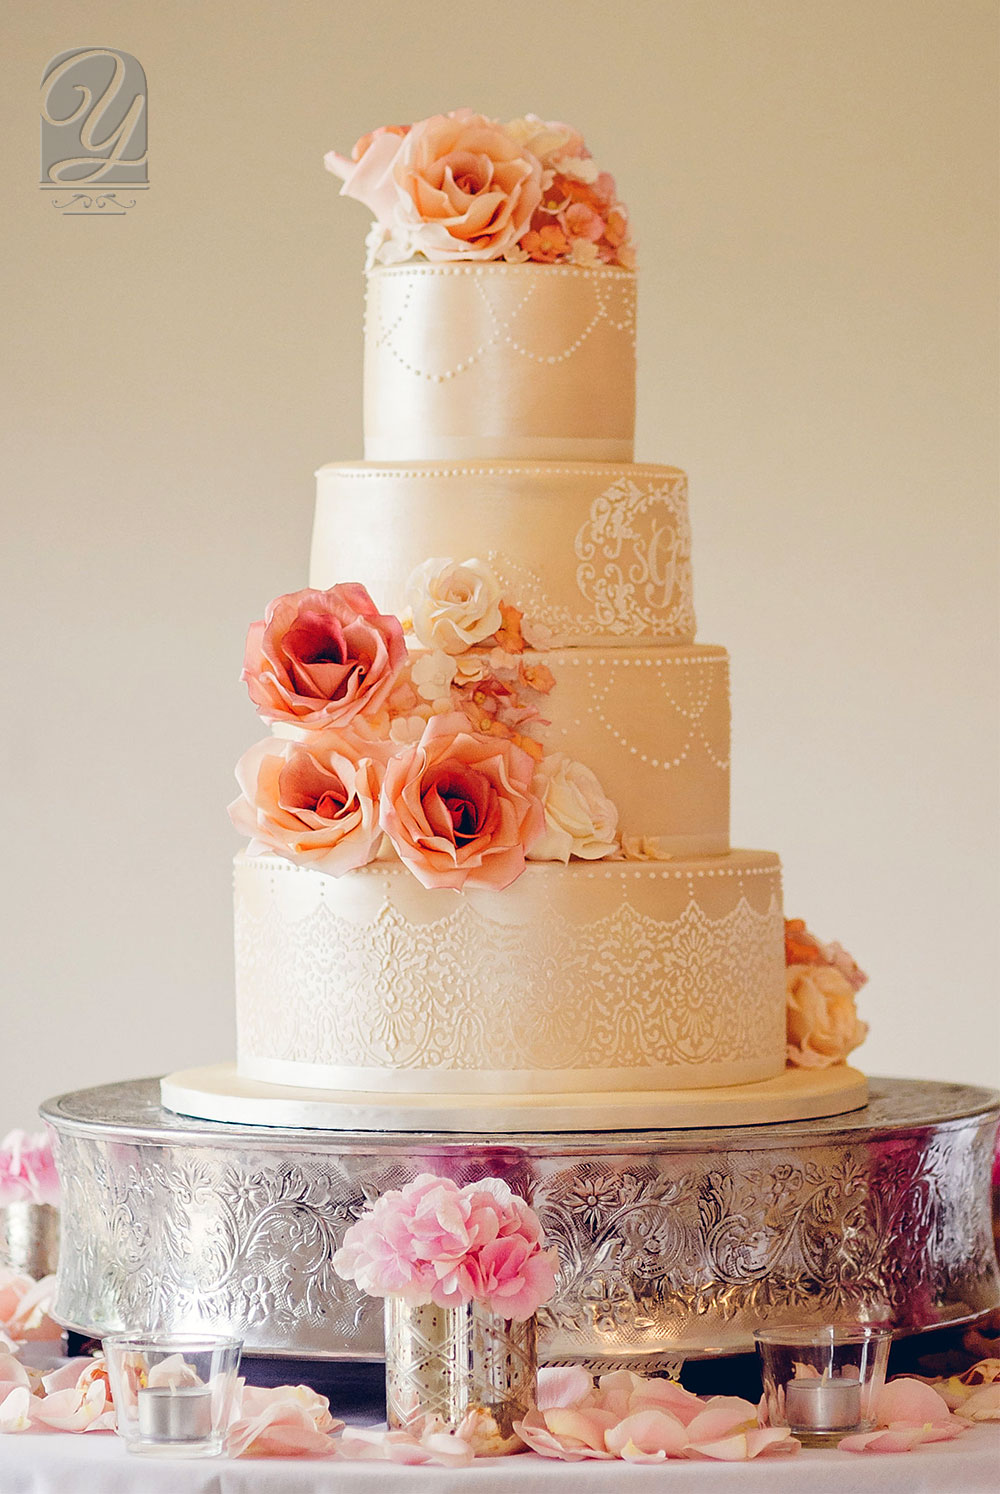 The Beautiful Sophie is a bespoke, premium wedding cake created by Unique Cakes by Yevnig